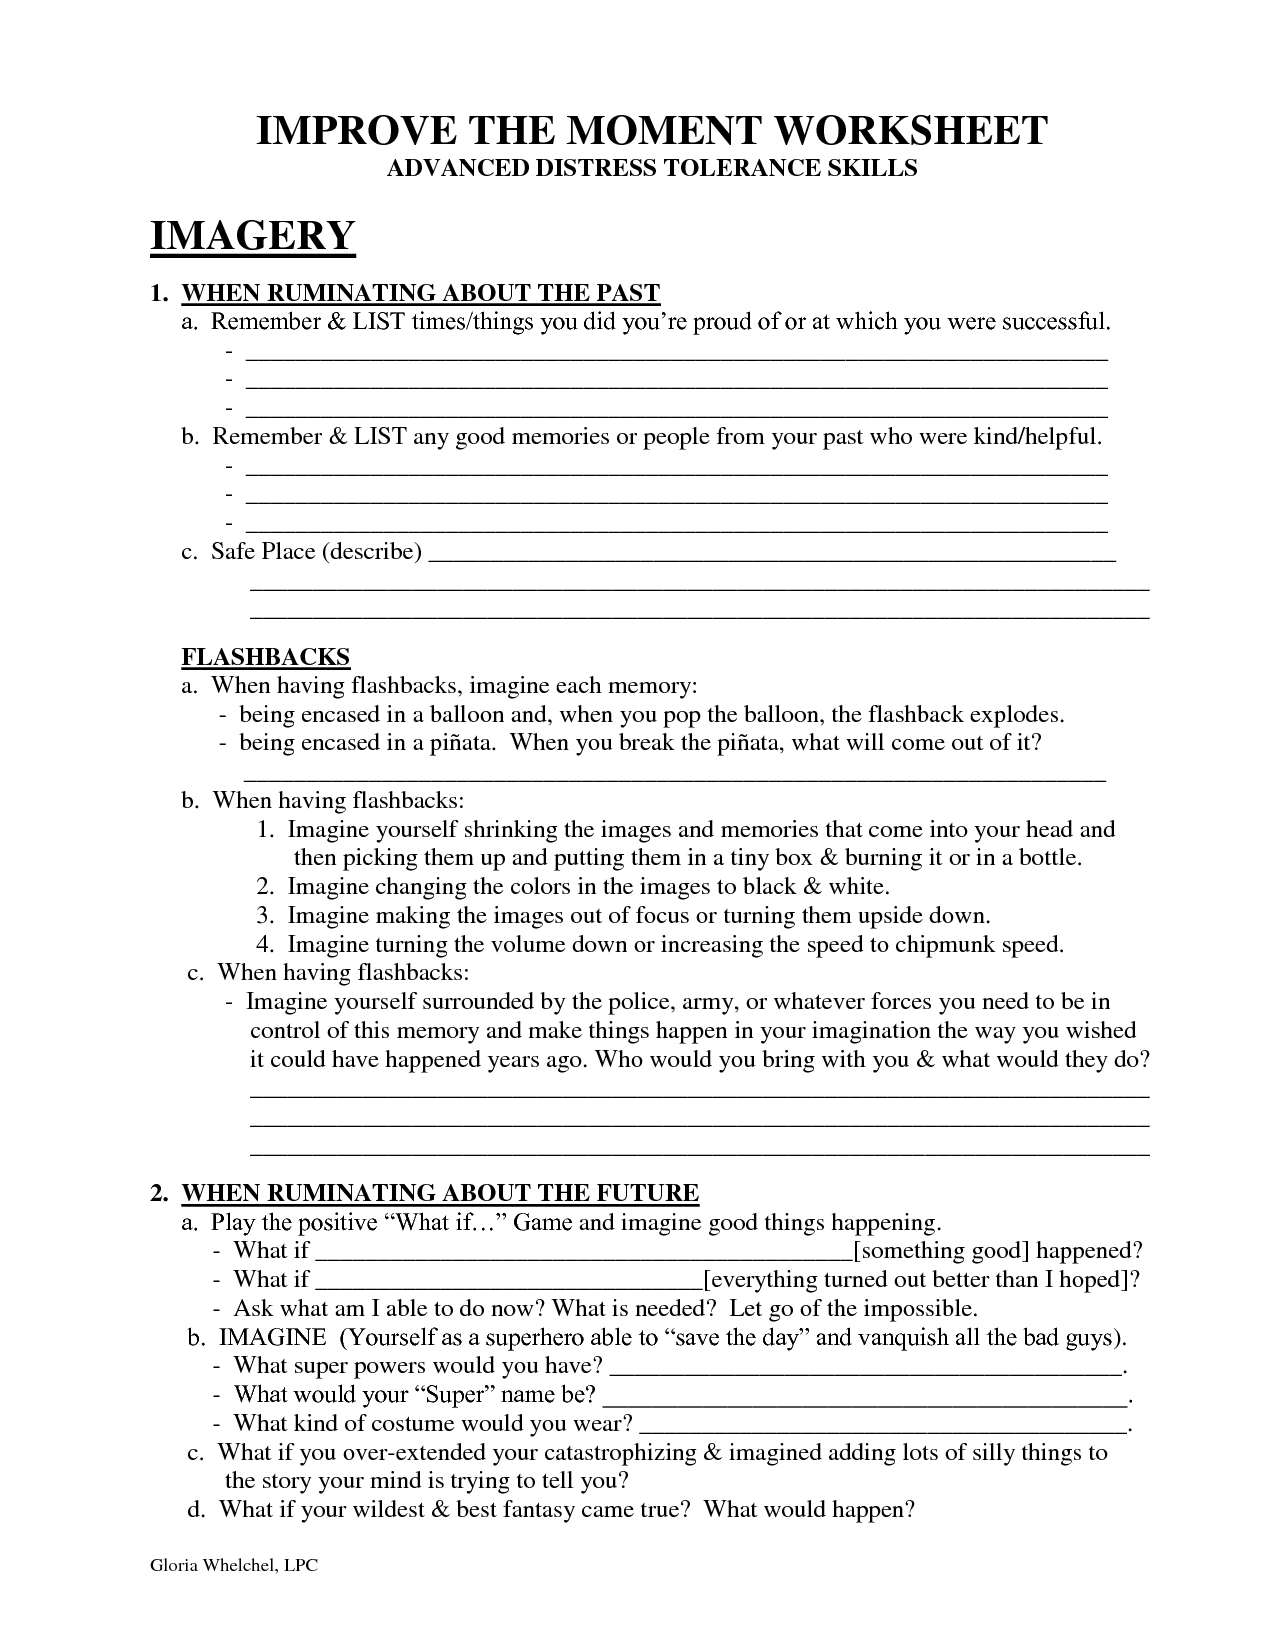 IMPROVE THE MOMENT WORKSHEET DBT Self Help – Dbt Worksheets